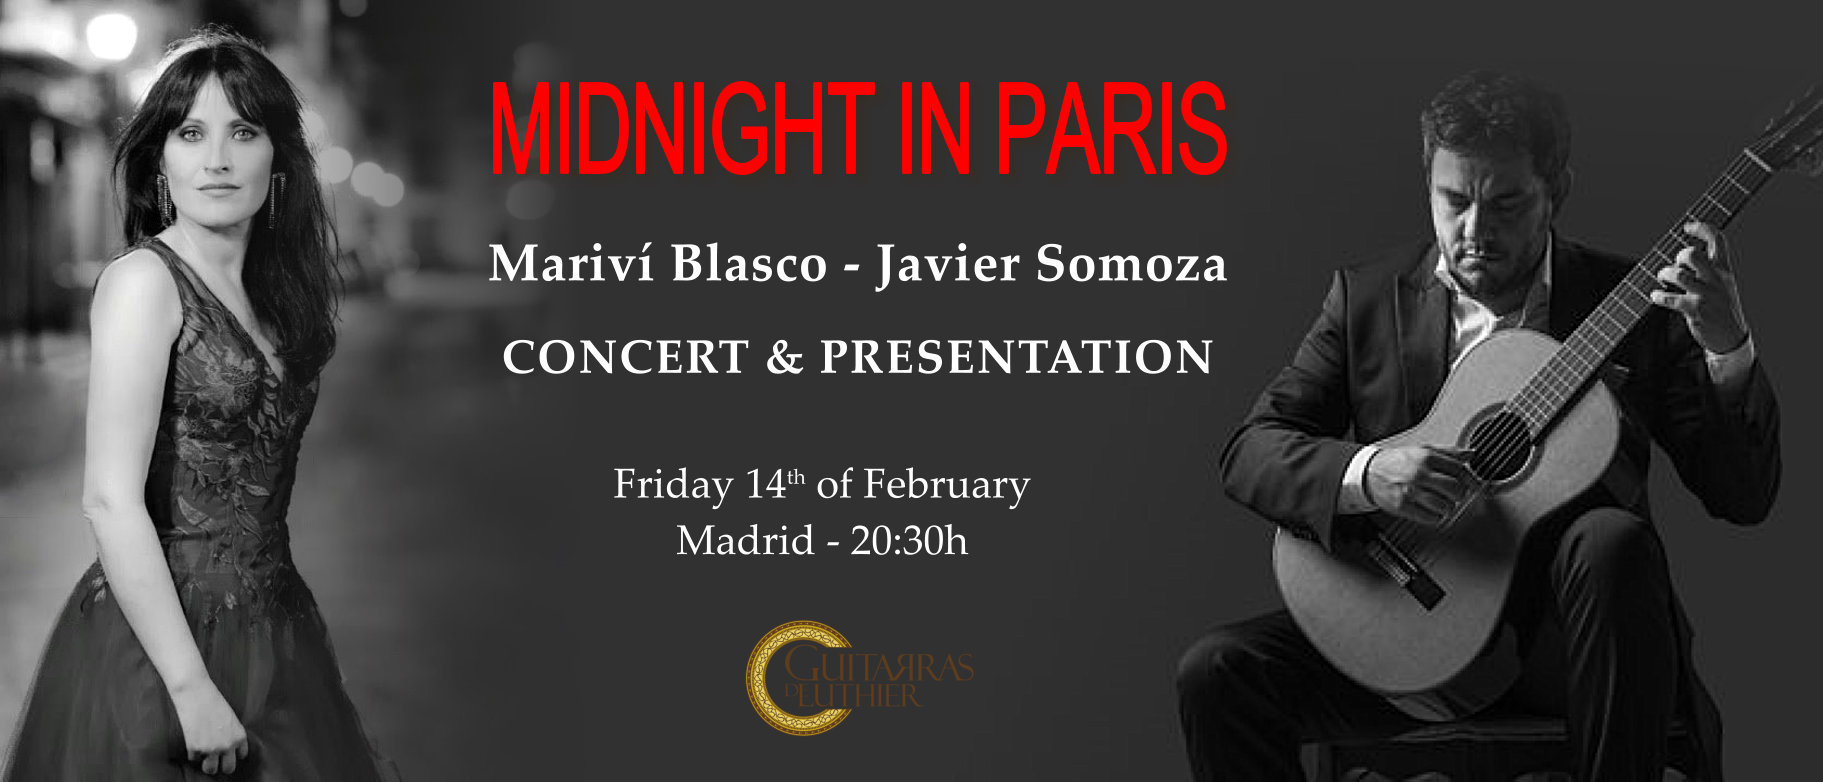 Midnight in Paris Concert